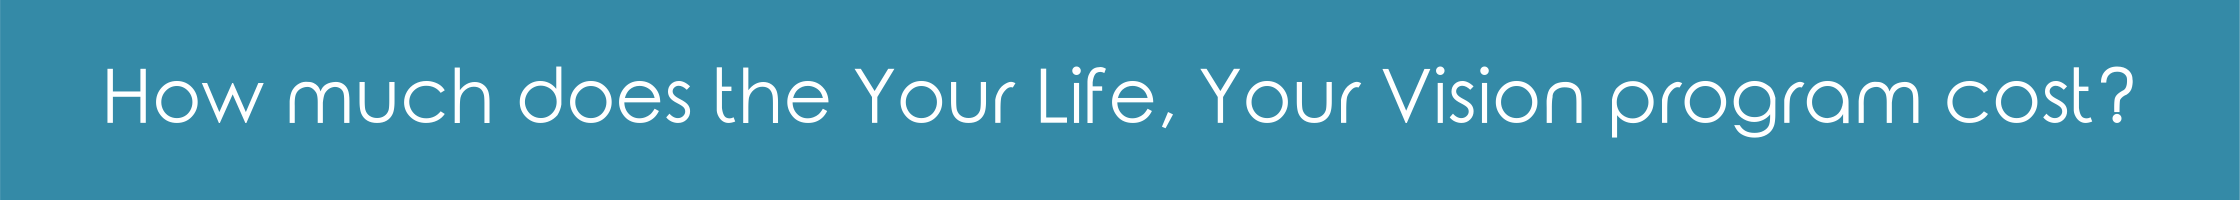 Your Life, Your Vision pricing